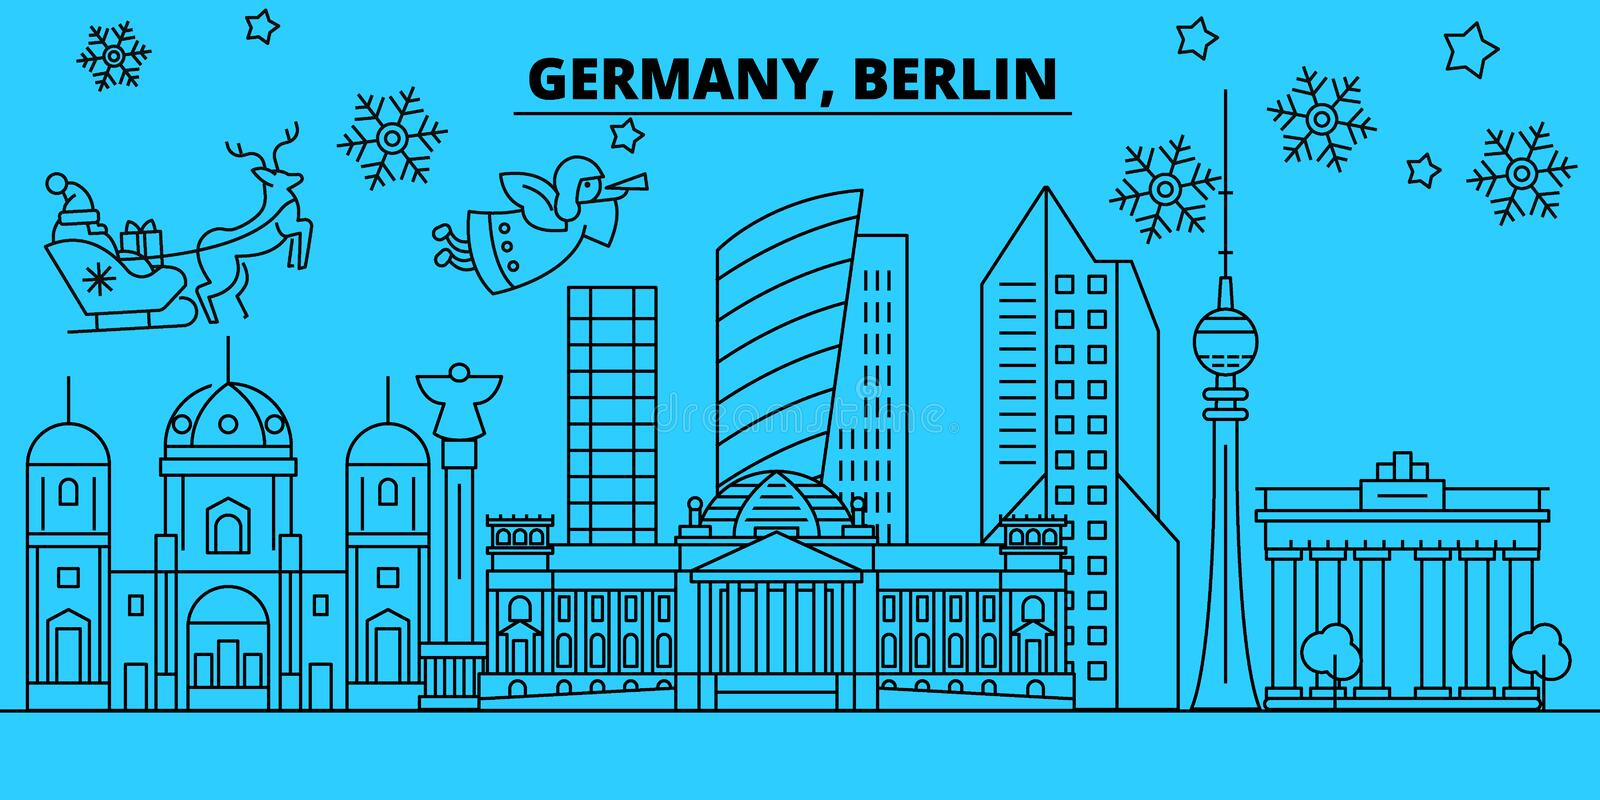 Germany, Berlin city winter holidays skyline. Merry Christmas, Happy New Year decorated banner with Santa Claus.Germany royalty free illustration